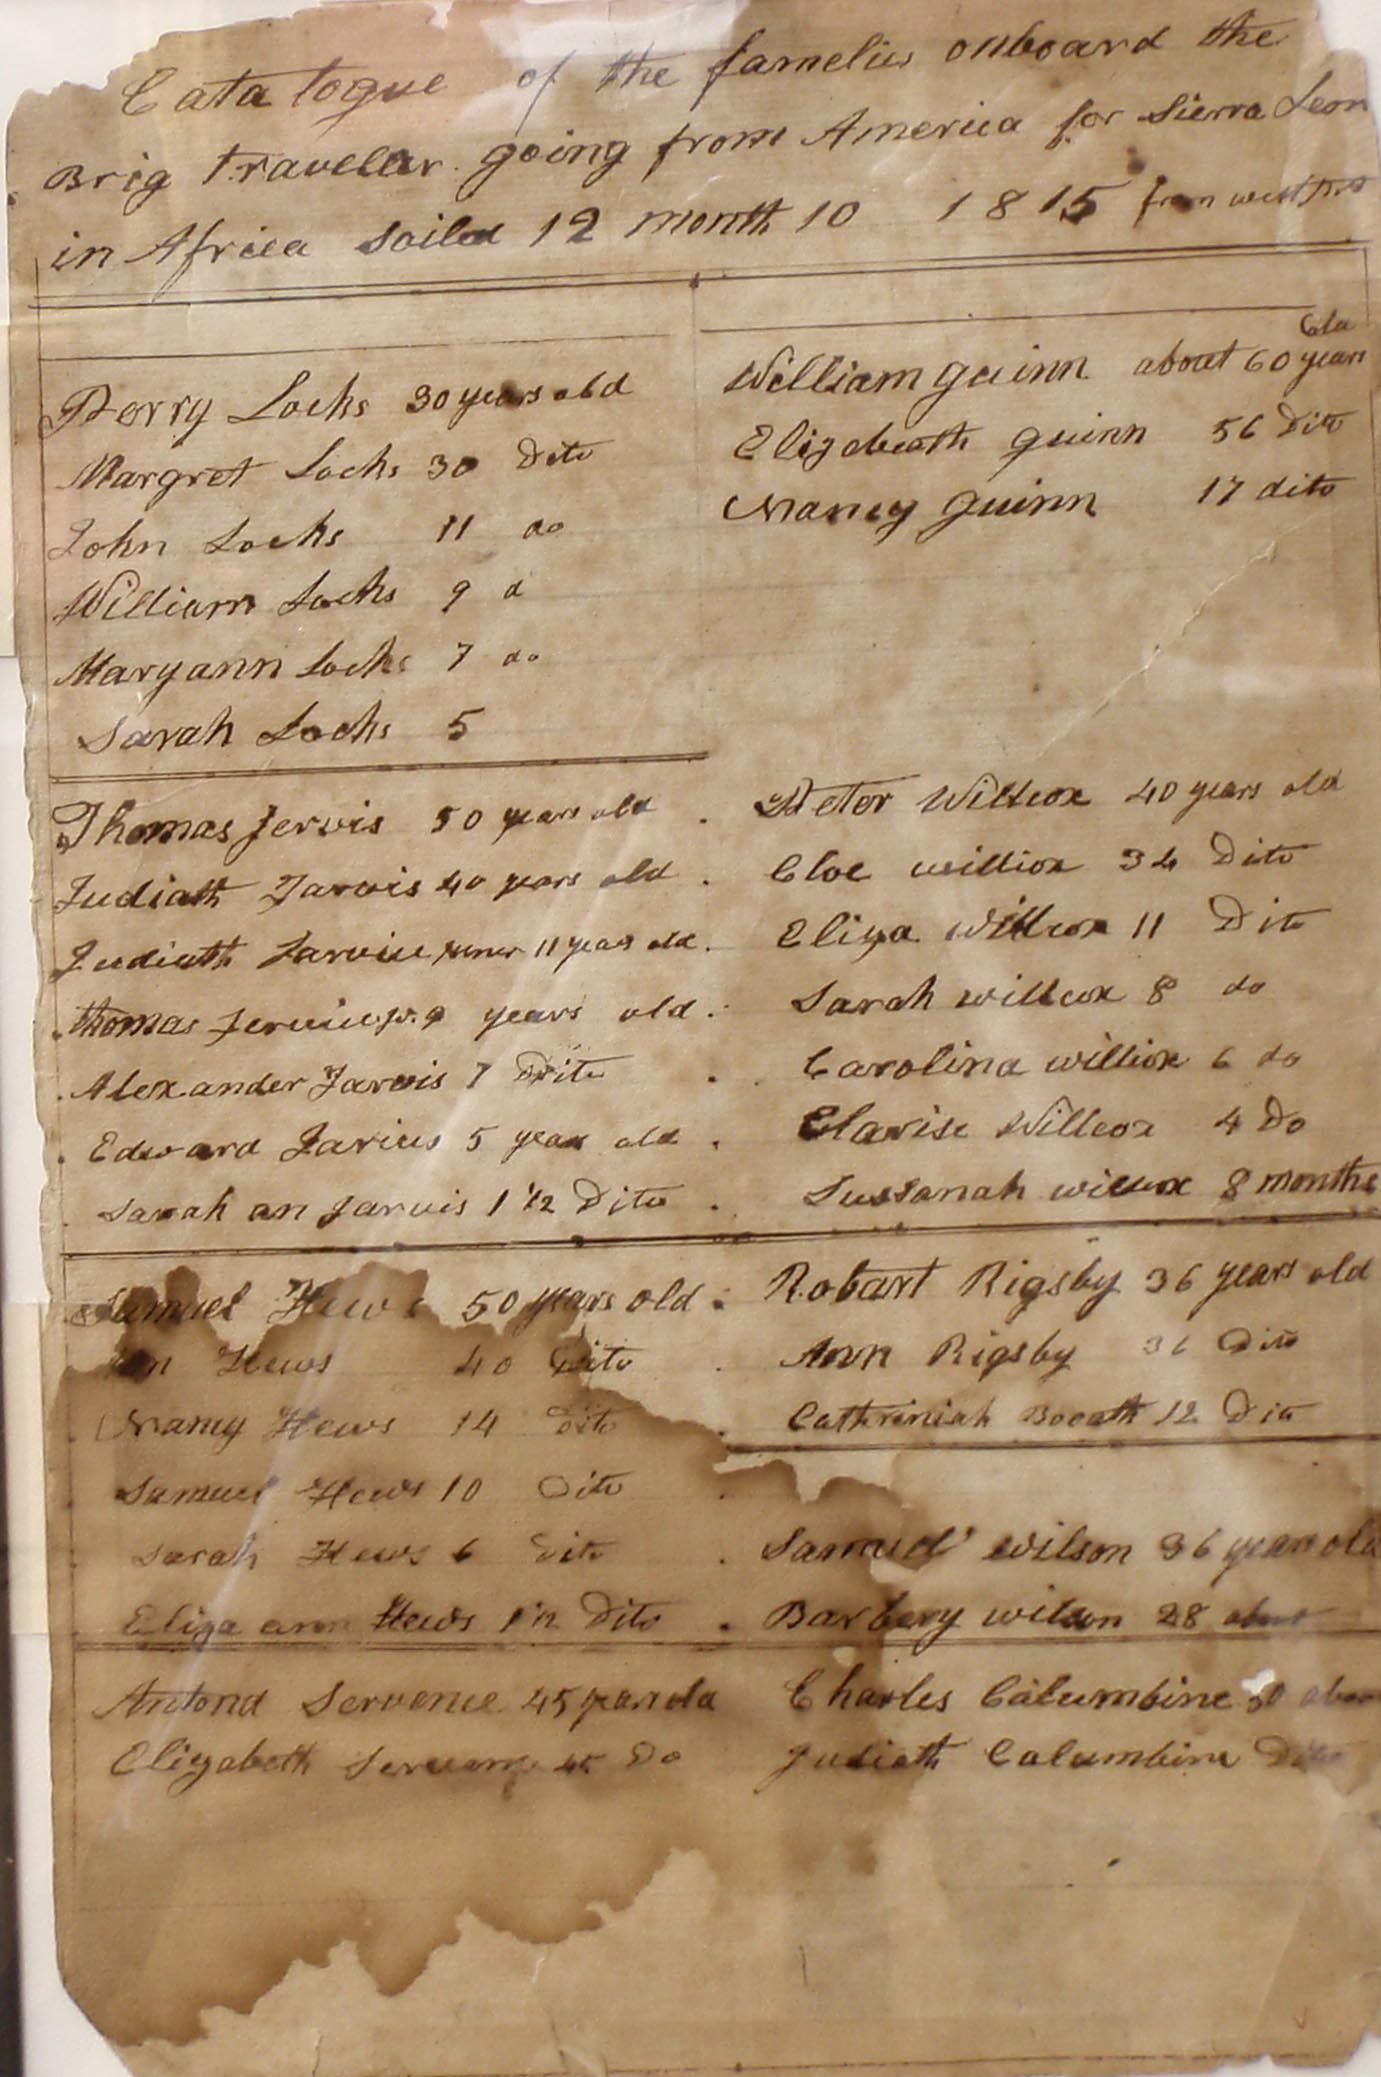 Catalog of families onboard Traveller, 10 Dec. 1815 (Cuffe P